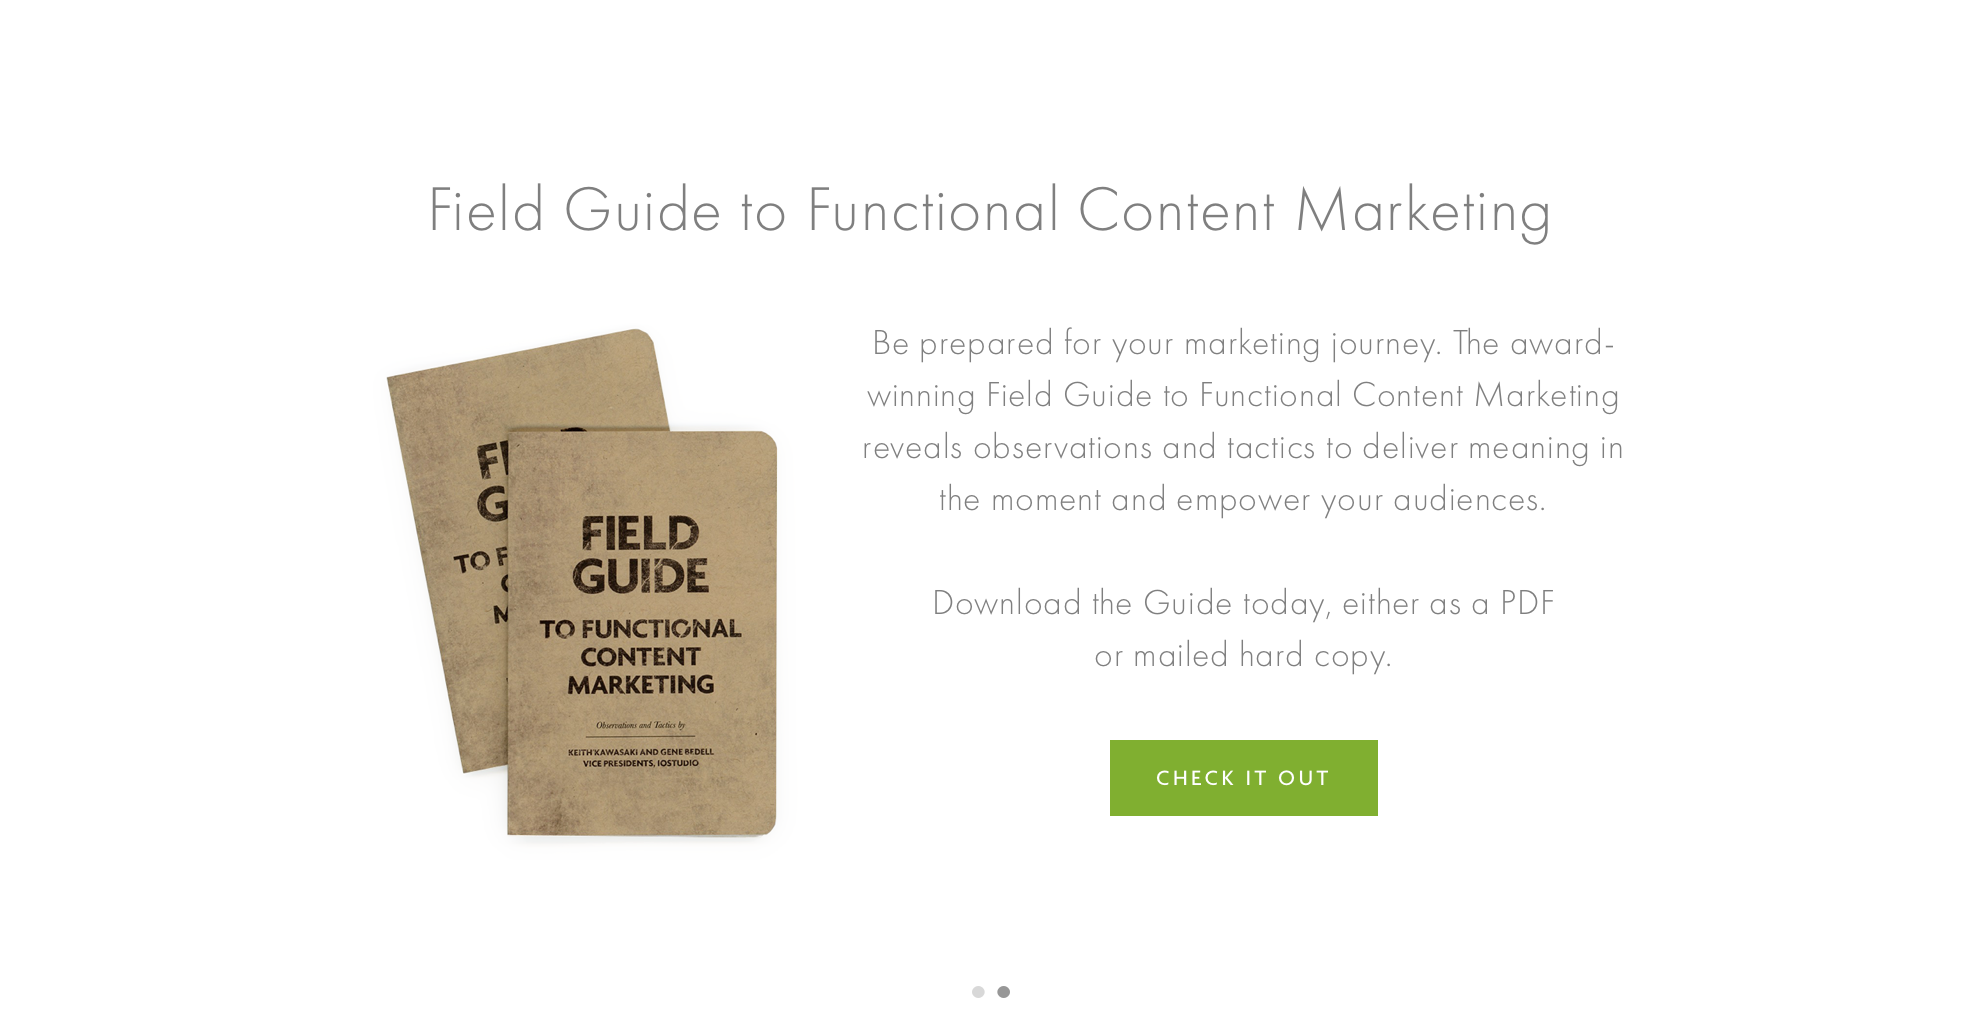 Field Guide to Functional Content Marketing